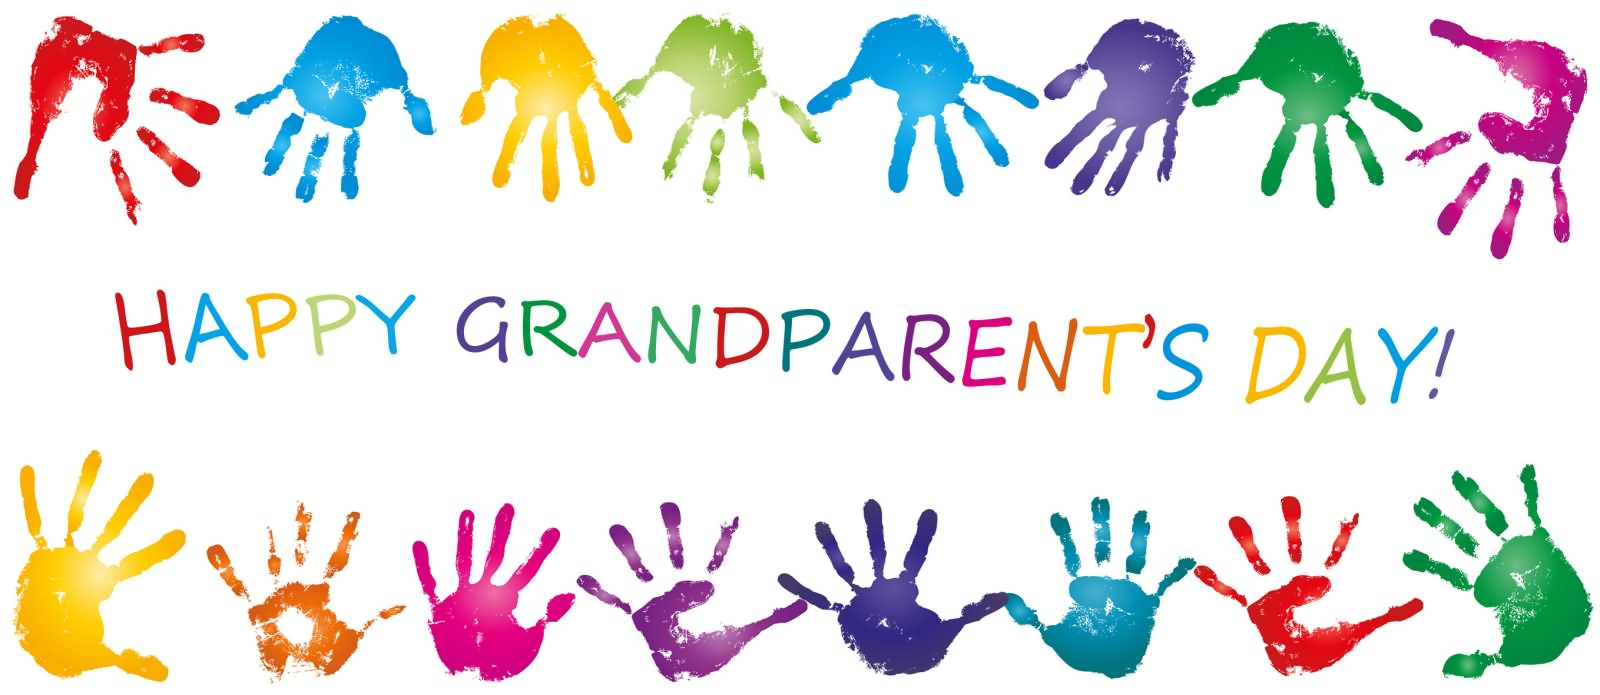 Happy-Grandparents-Day-Colorful-Handprints-Picture